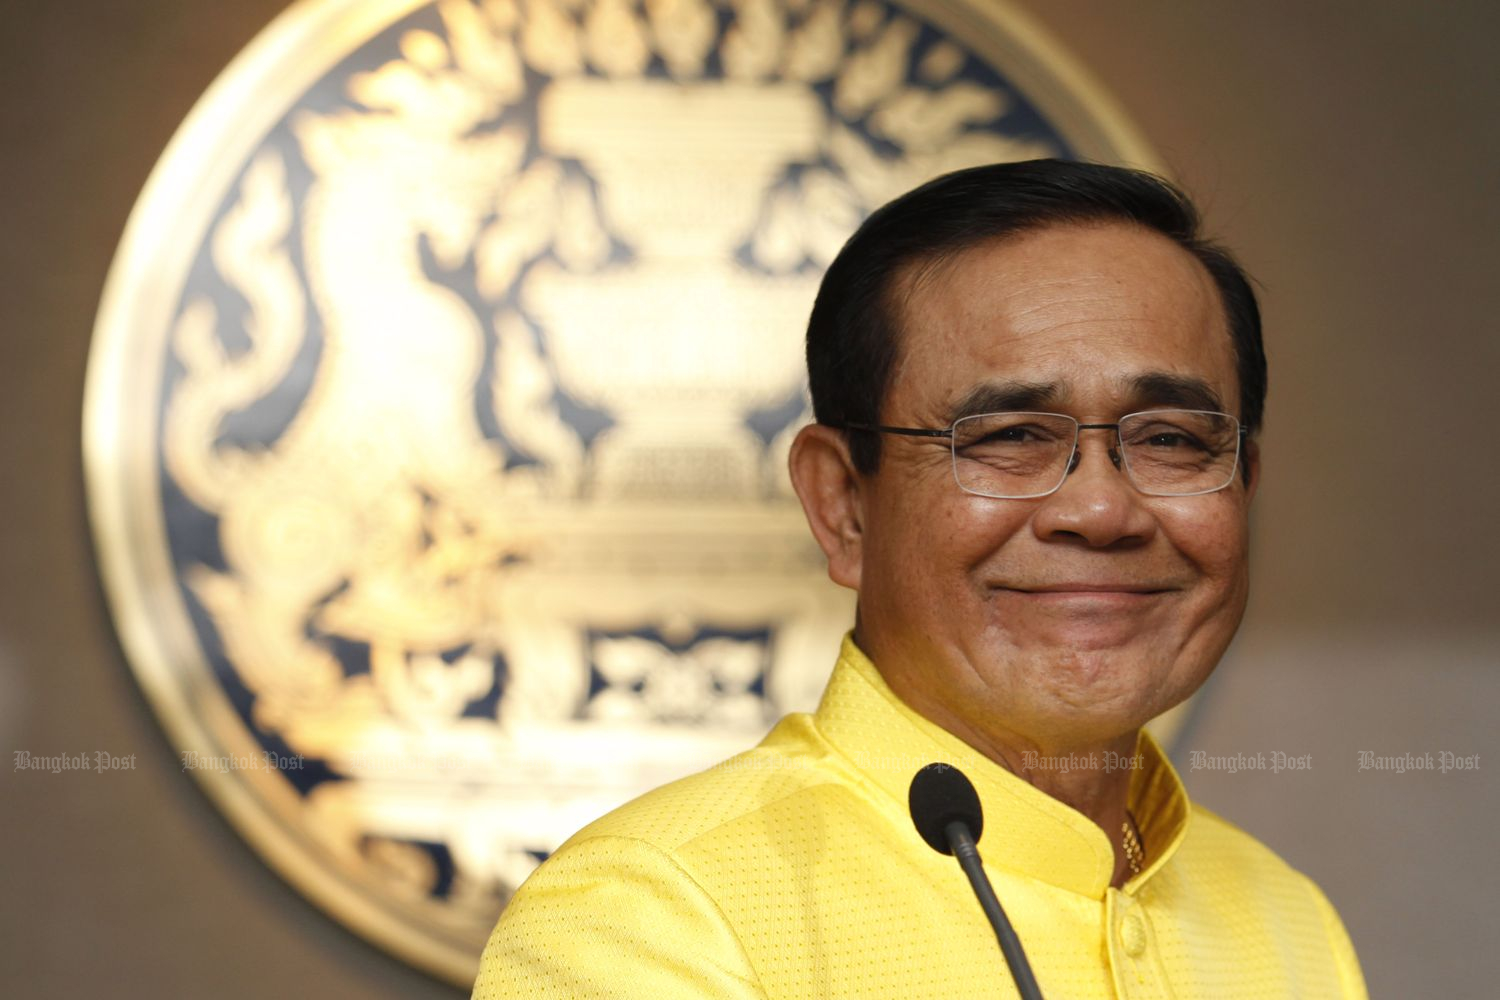 Prime Minister Prayut Chan-o-cha smiles during a briefing after the first cabinet meeting of his government on Tuesday. (Photo by Wichan Charoenkiatpakul)